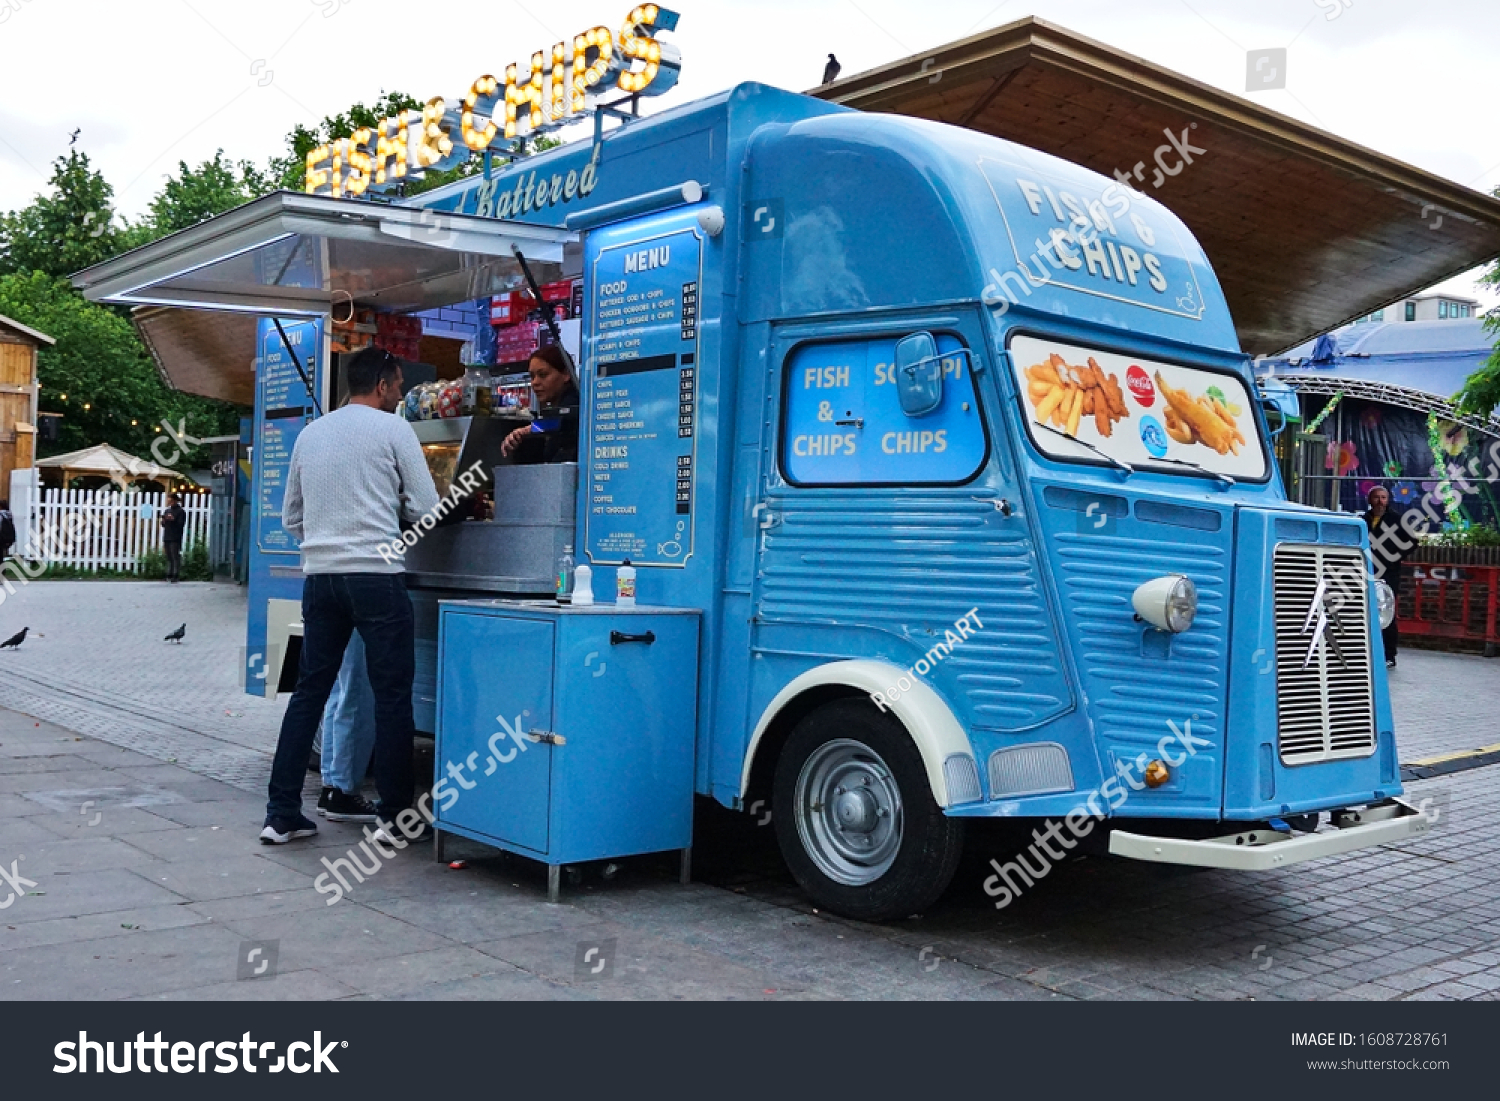 stock-photo-fish-and-chips-food-truck-at